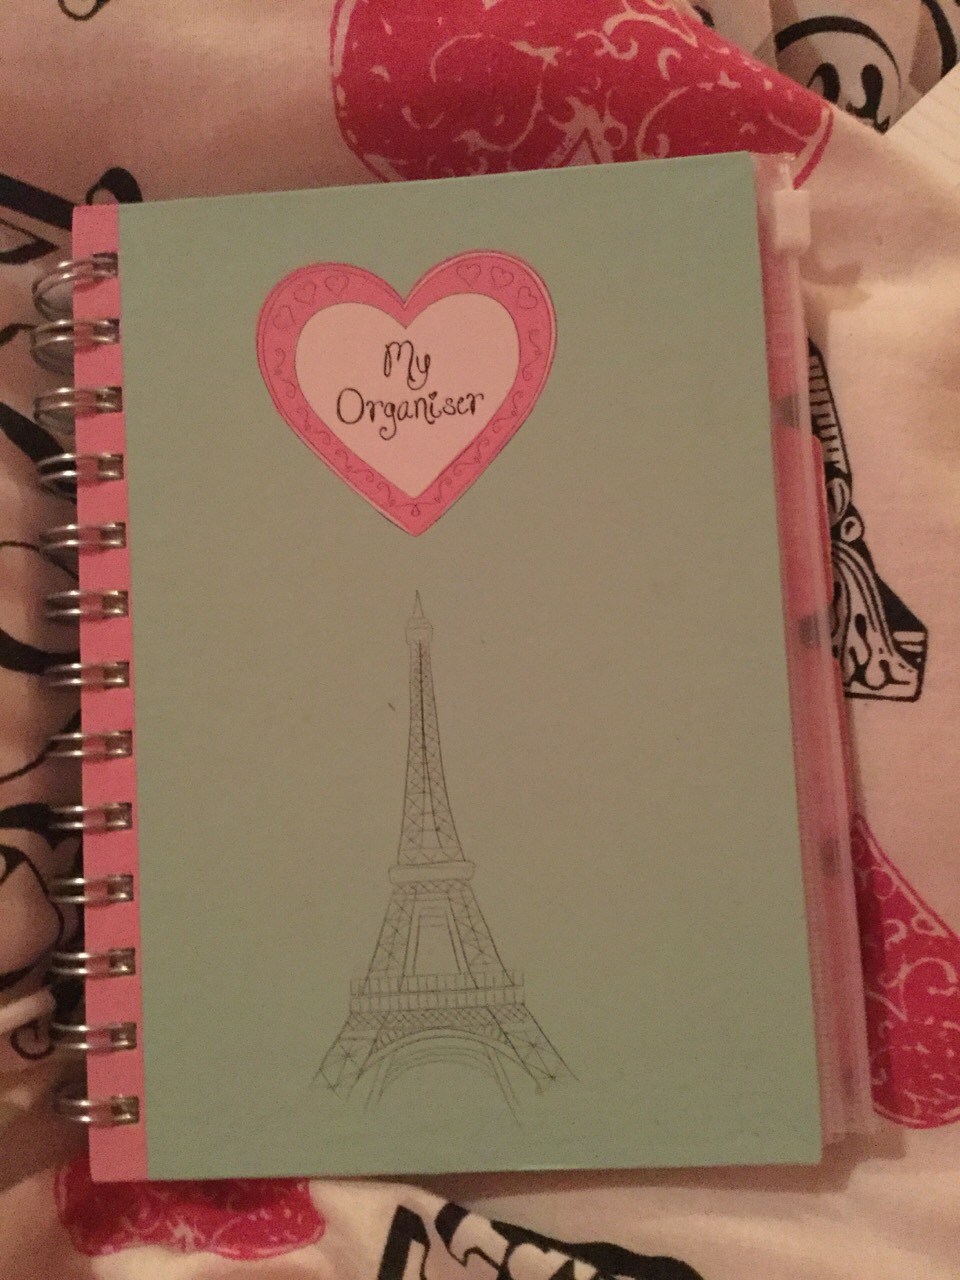 Have an organiser or schedule